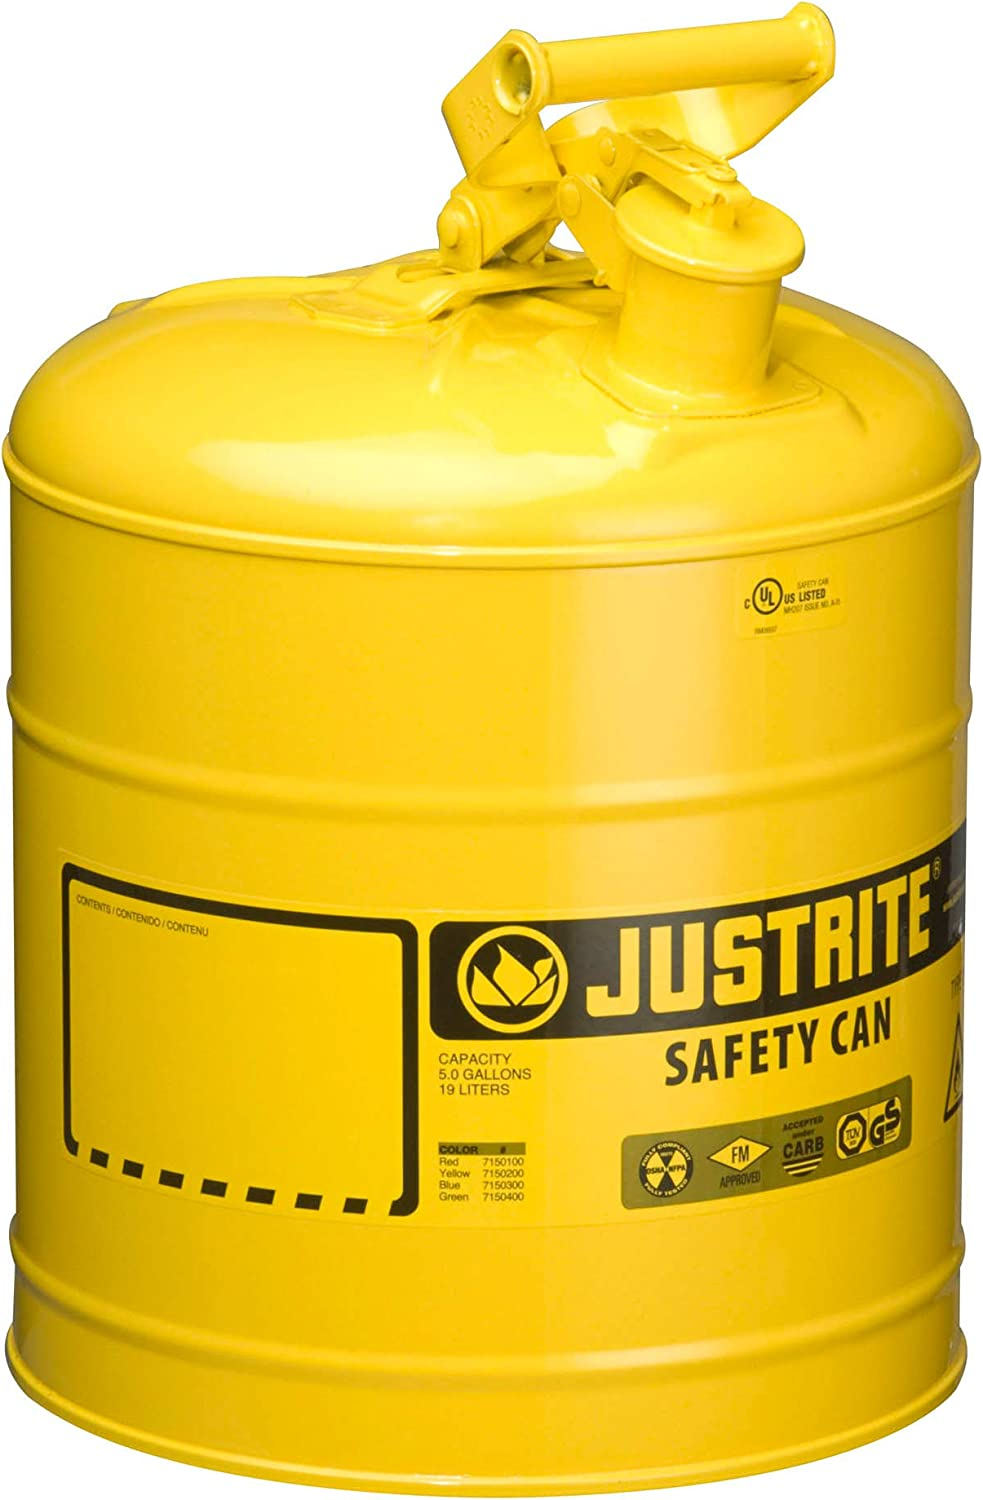 JDS HARDWARE IGE Plastic Jerry Can 10L Capacity